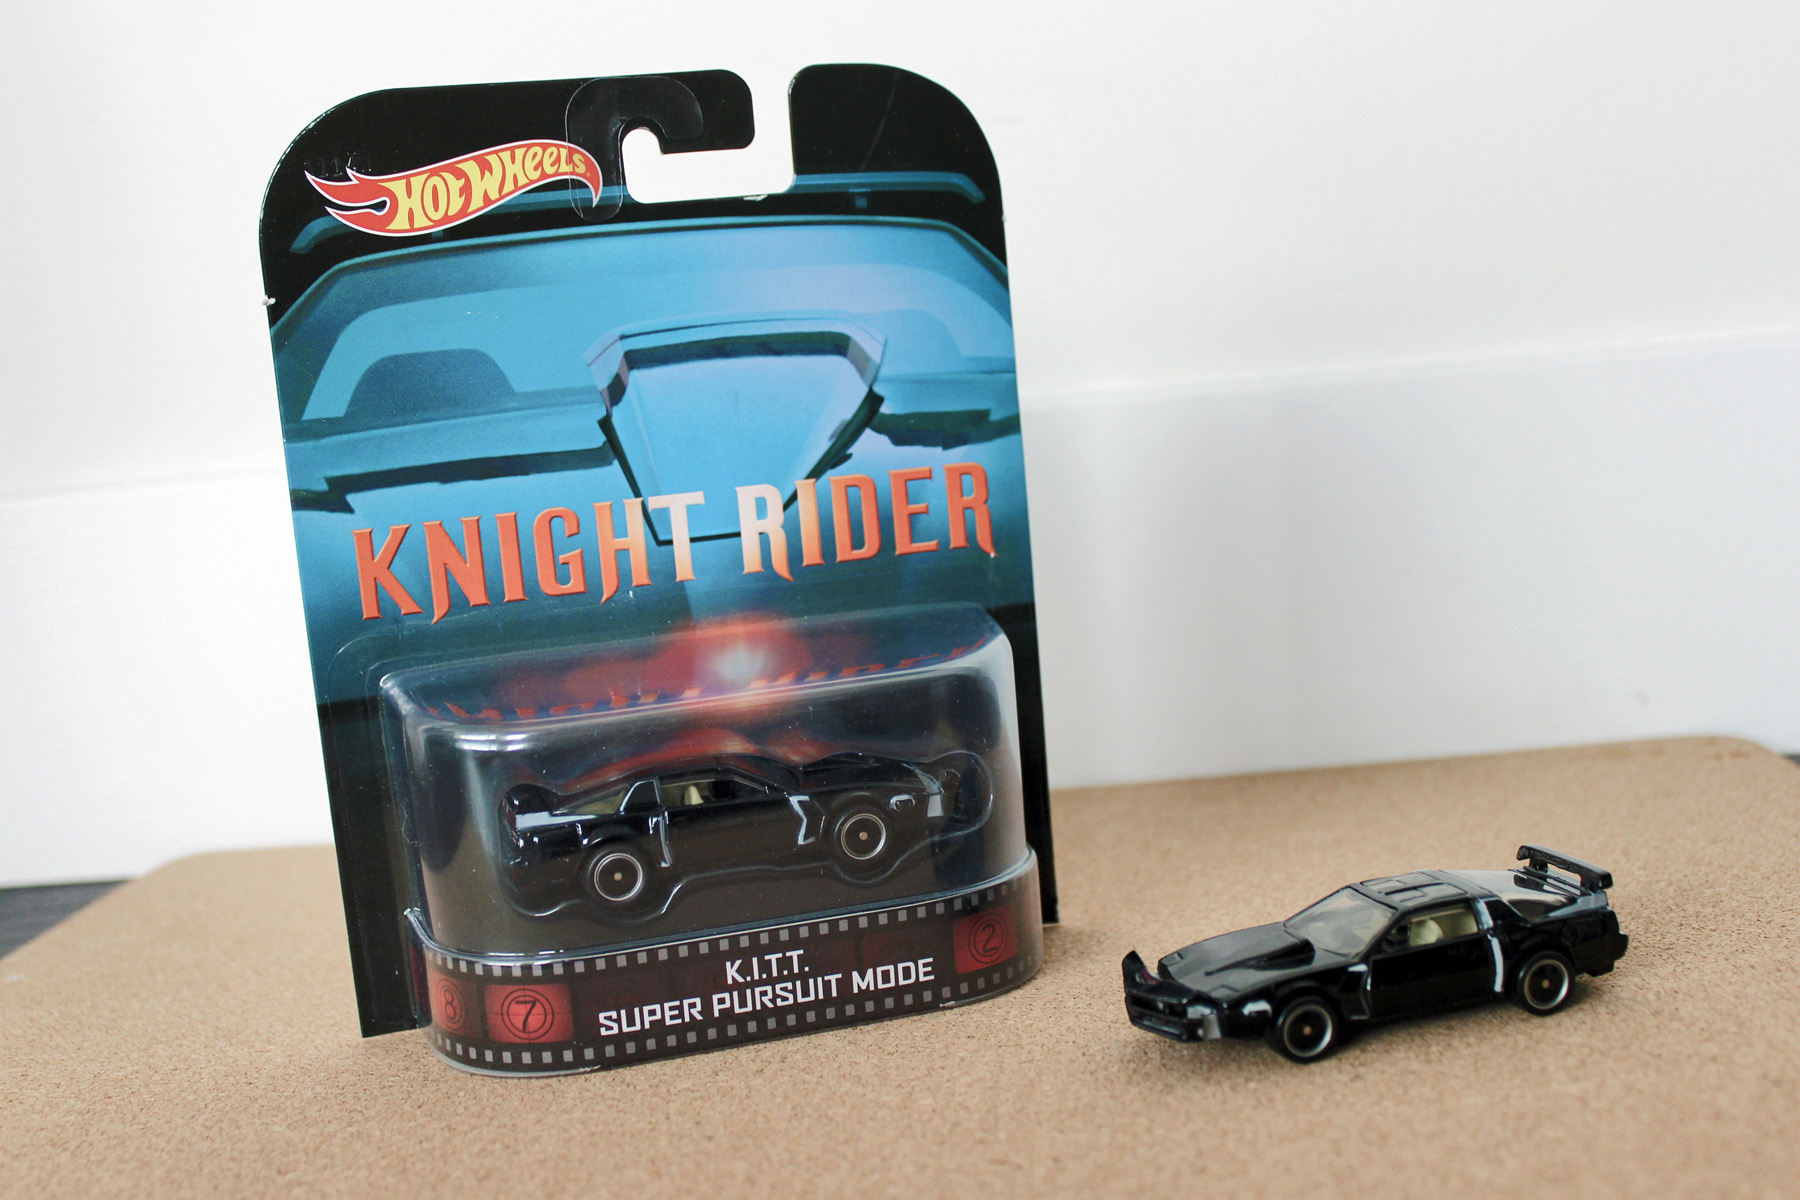 """While they have done both K.I.T.T. and its foil, K.A.R.R., they've even gone the extra mile and recreated an """"angry"""" K.I.T.T.: the Super Pursuit Mode version. It comes complete with raised front bumper and wing, and exposed air inlets. Doesn't talk, though. Shame, that."""